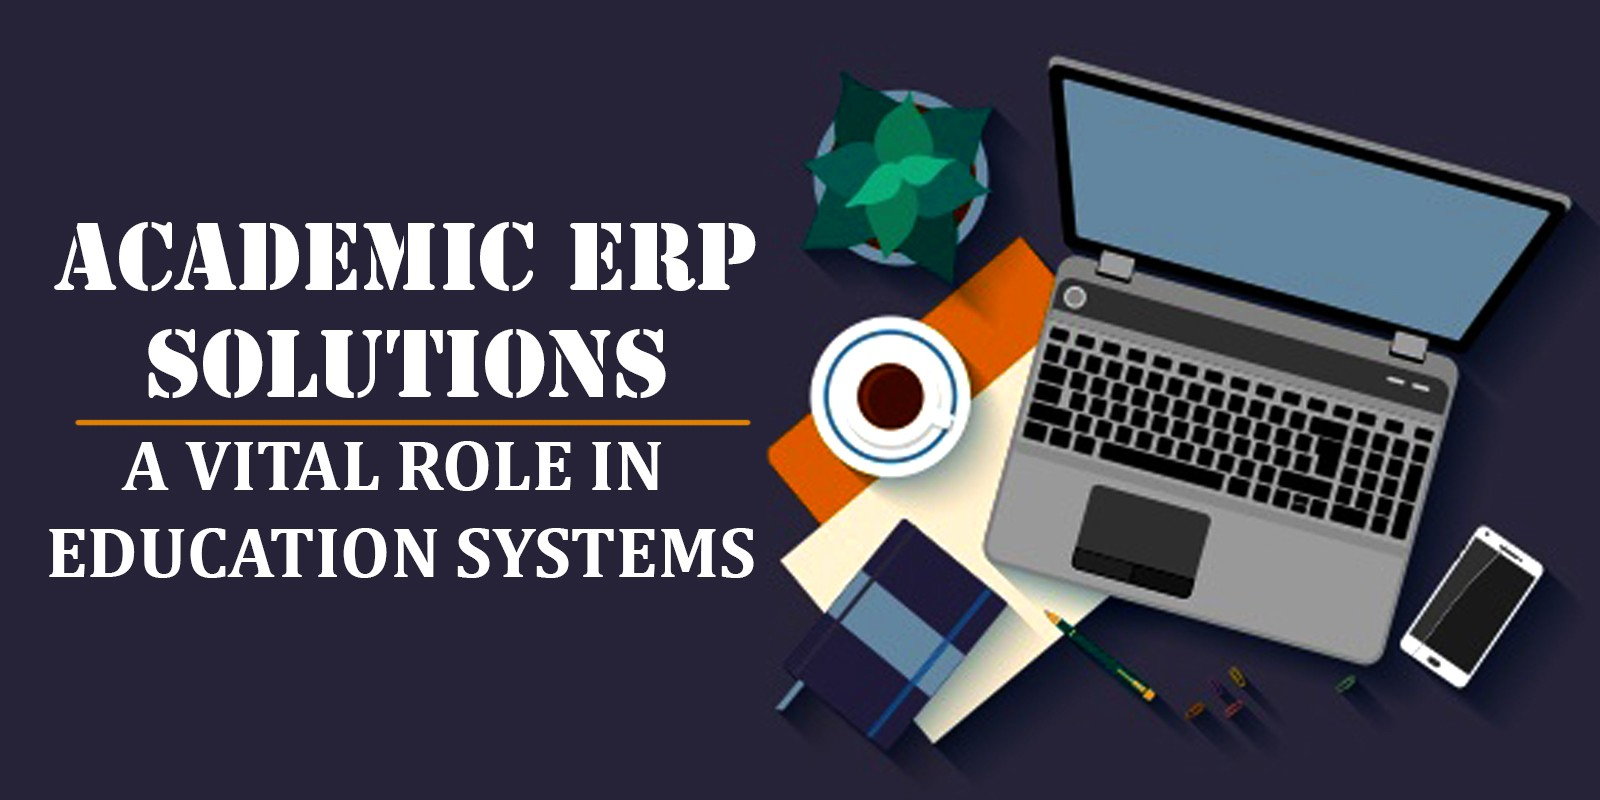 Academic Erp Solutions A Vital Role In Education Systems